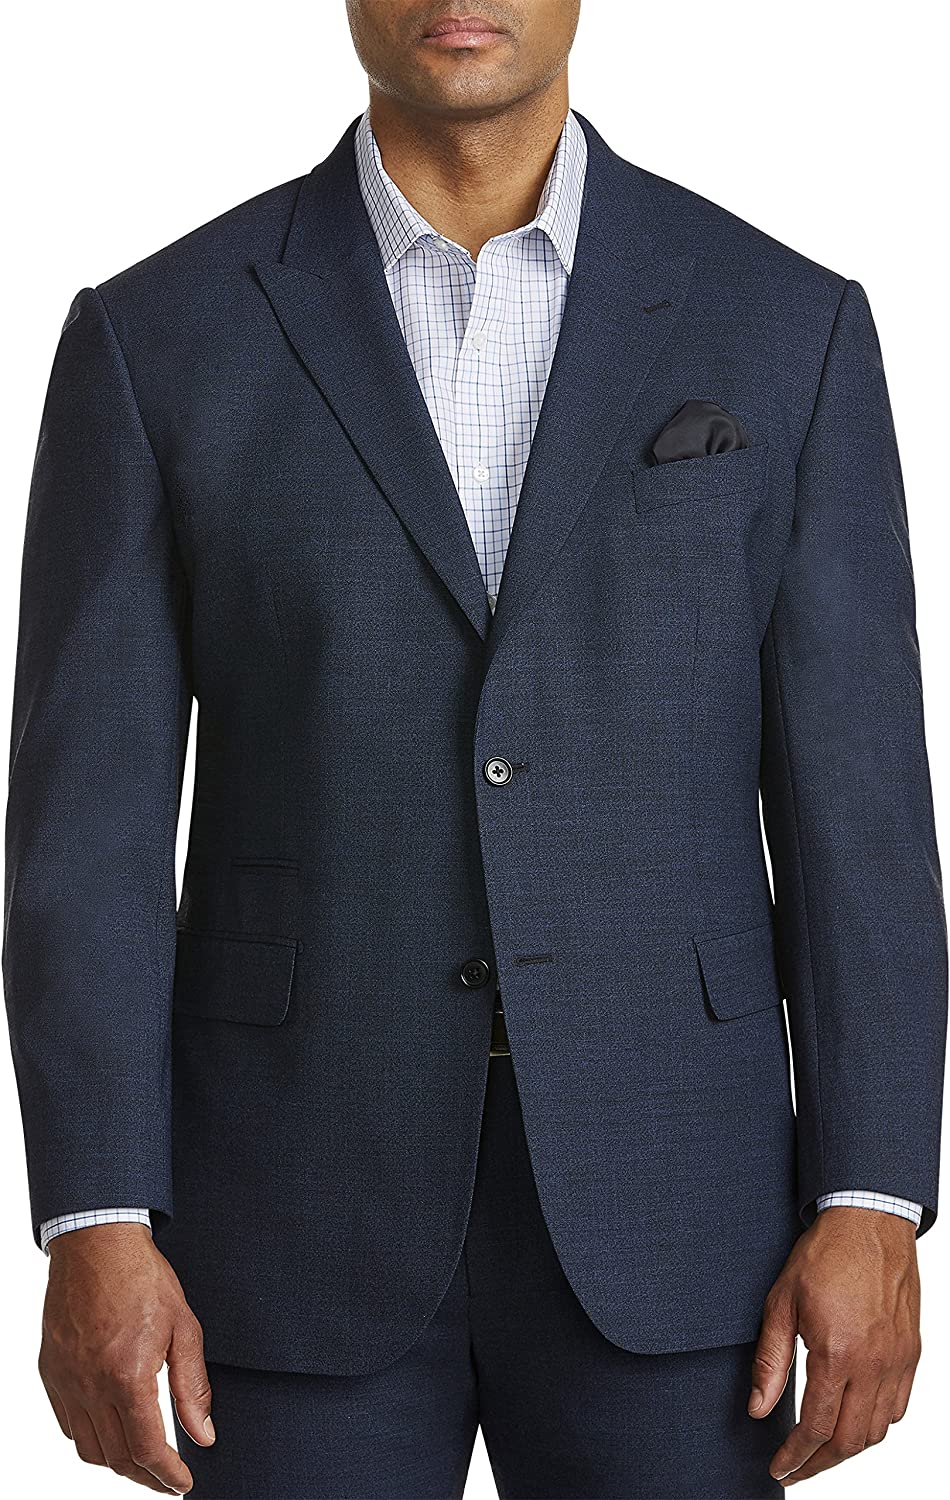 Synrgy by DXL Big and Tall Jacket-Relaxer Performance Lange Suit Jacket, Blue